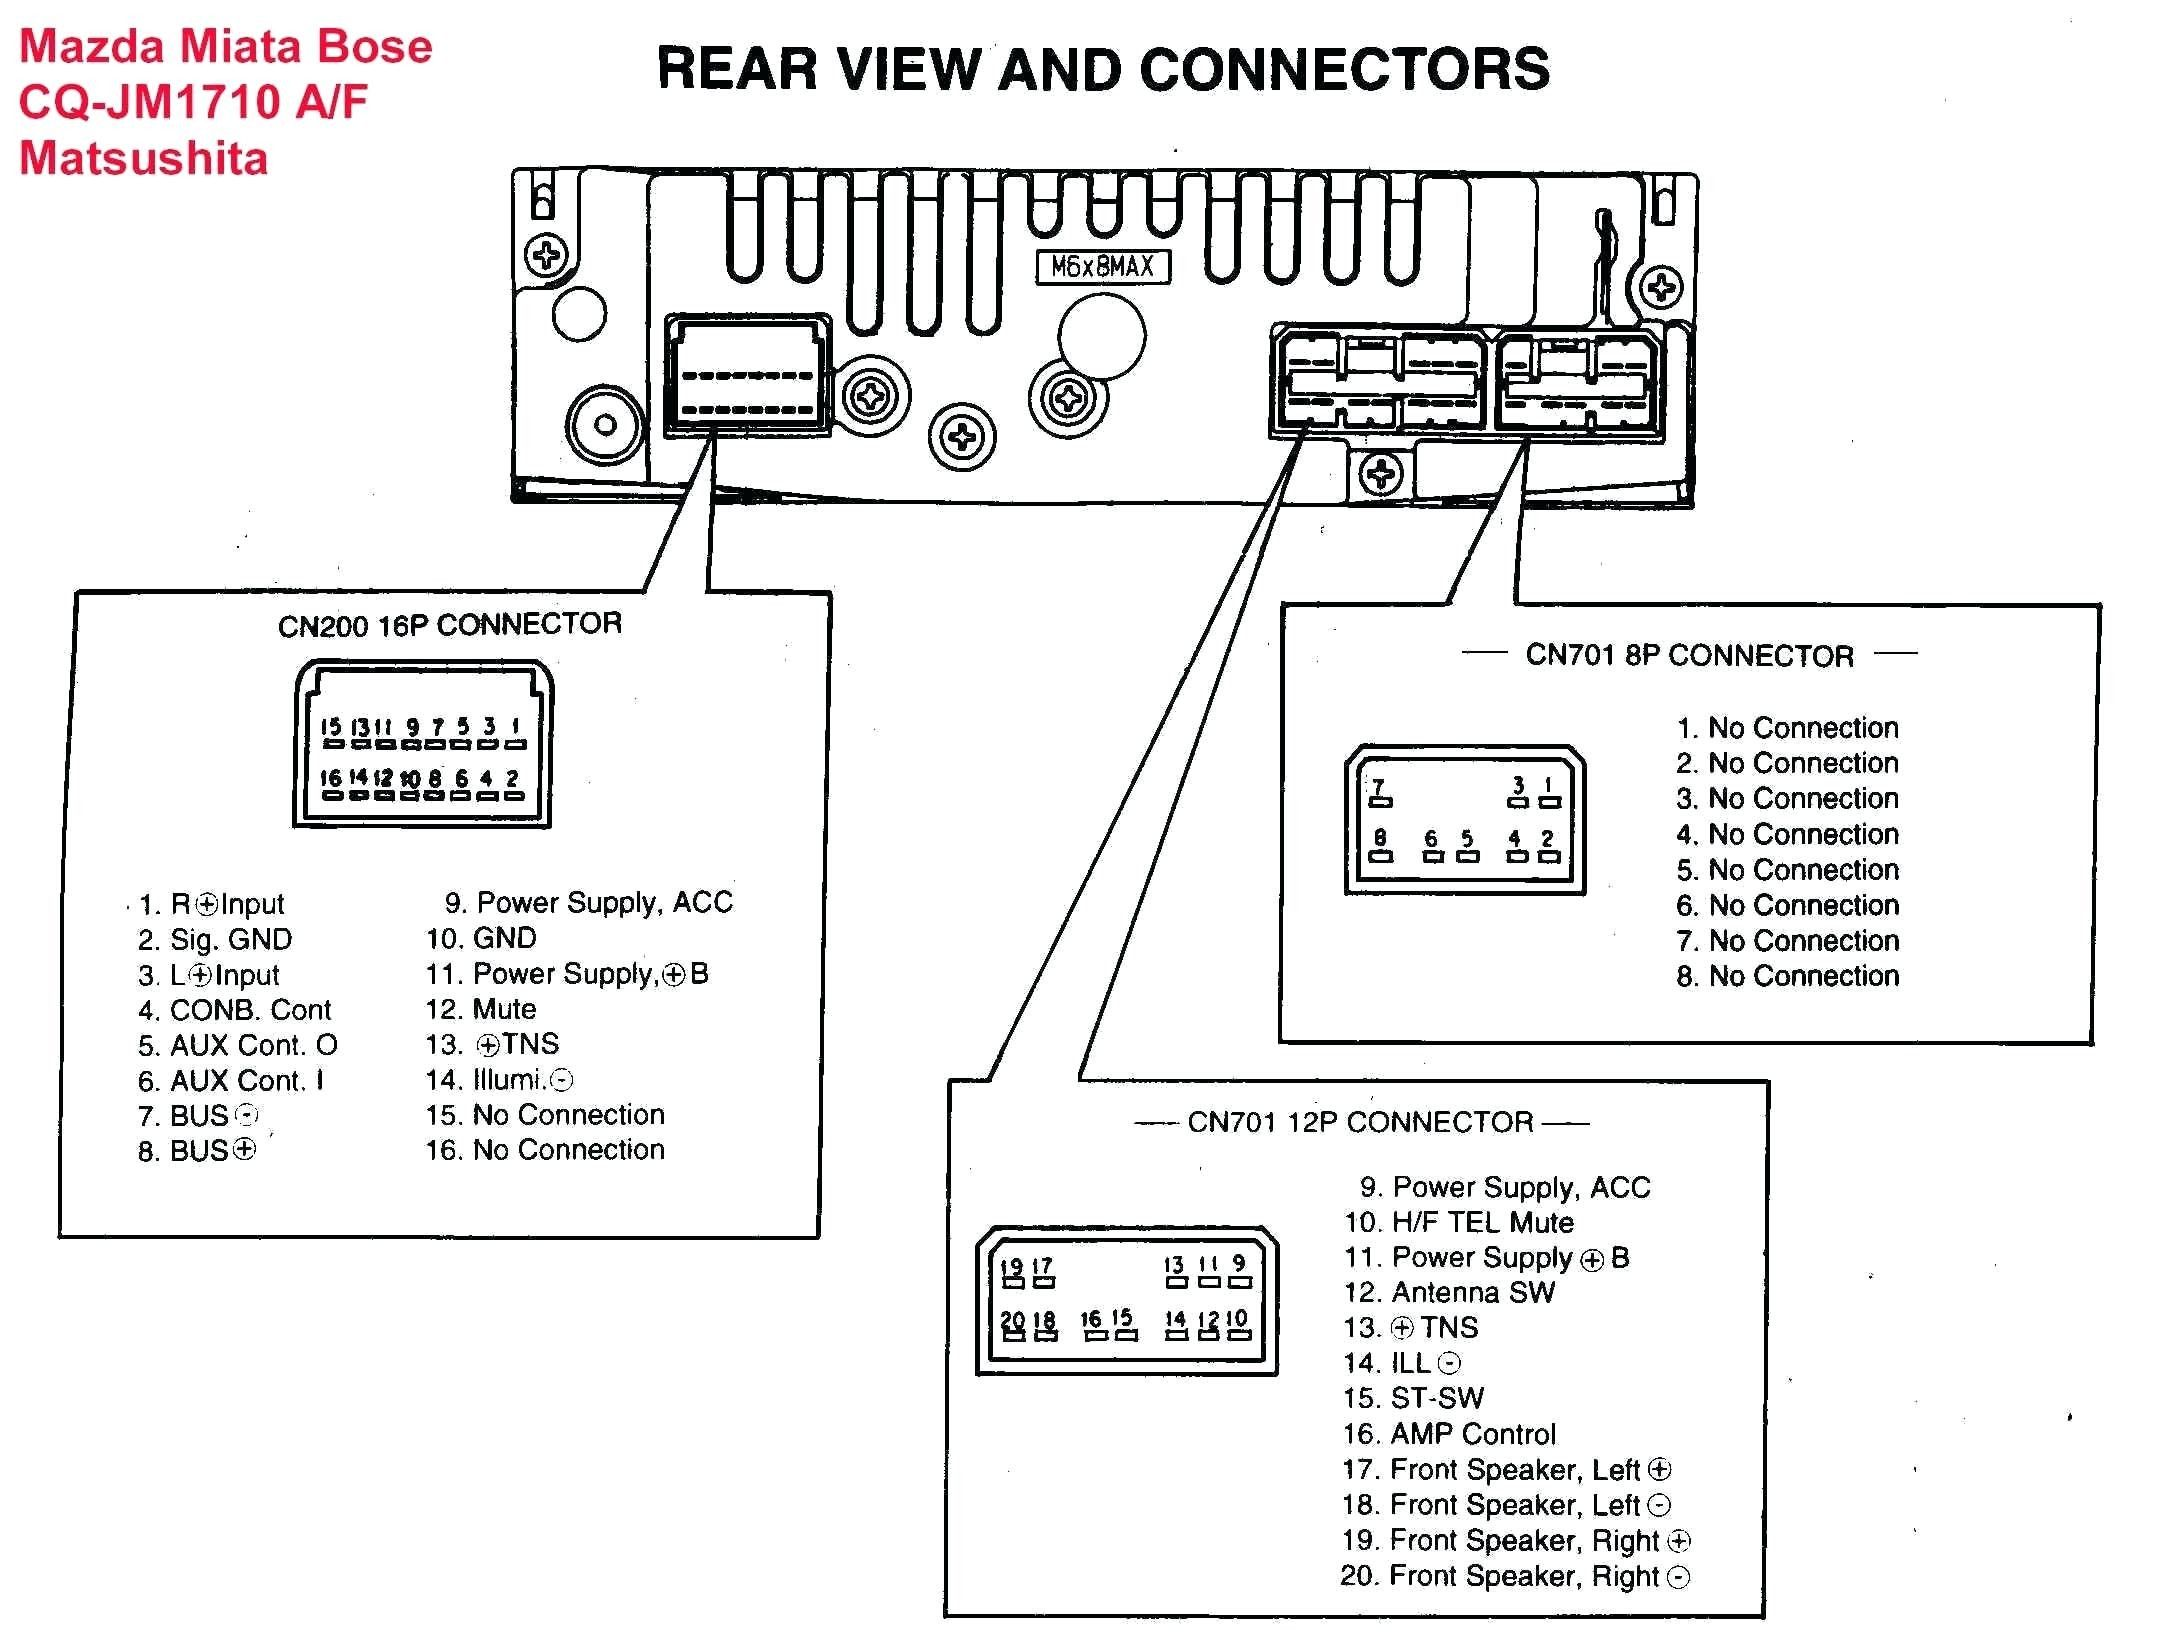 Unique Wiring Diagram Sony Car Stereo Diagram Diagramtemplate Diagramsample Diagrama De Instalacion Electrica Bose Instalacion Electrica